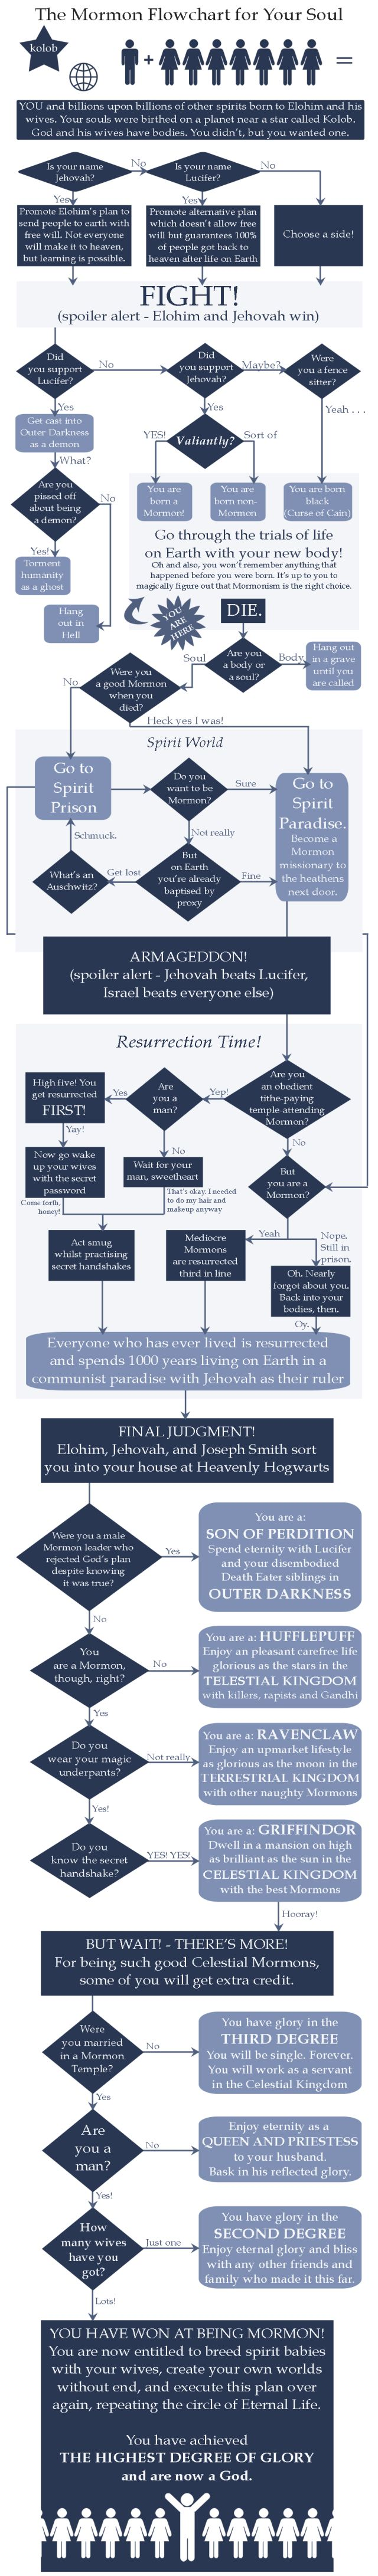 Ever wondered what would happen to your soul if Southpark/ The Mormons turn out to be right? #mormonflowchart #mormon #ExMormon